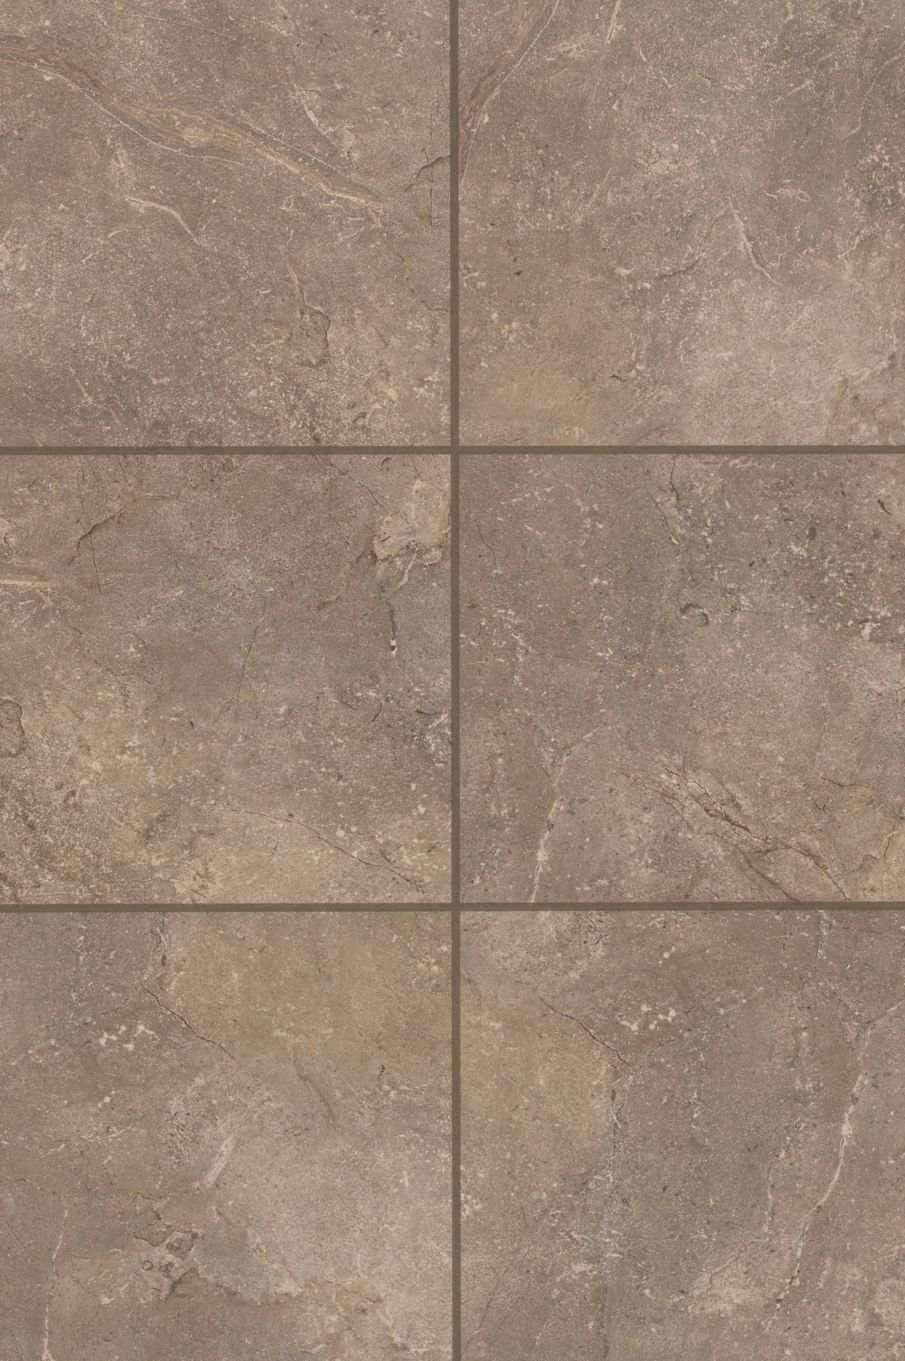 CeramicPorcelainTile Alvarita T783F-AV11 Bruno